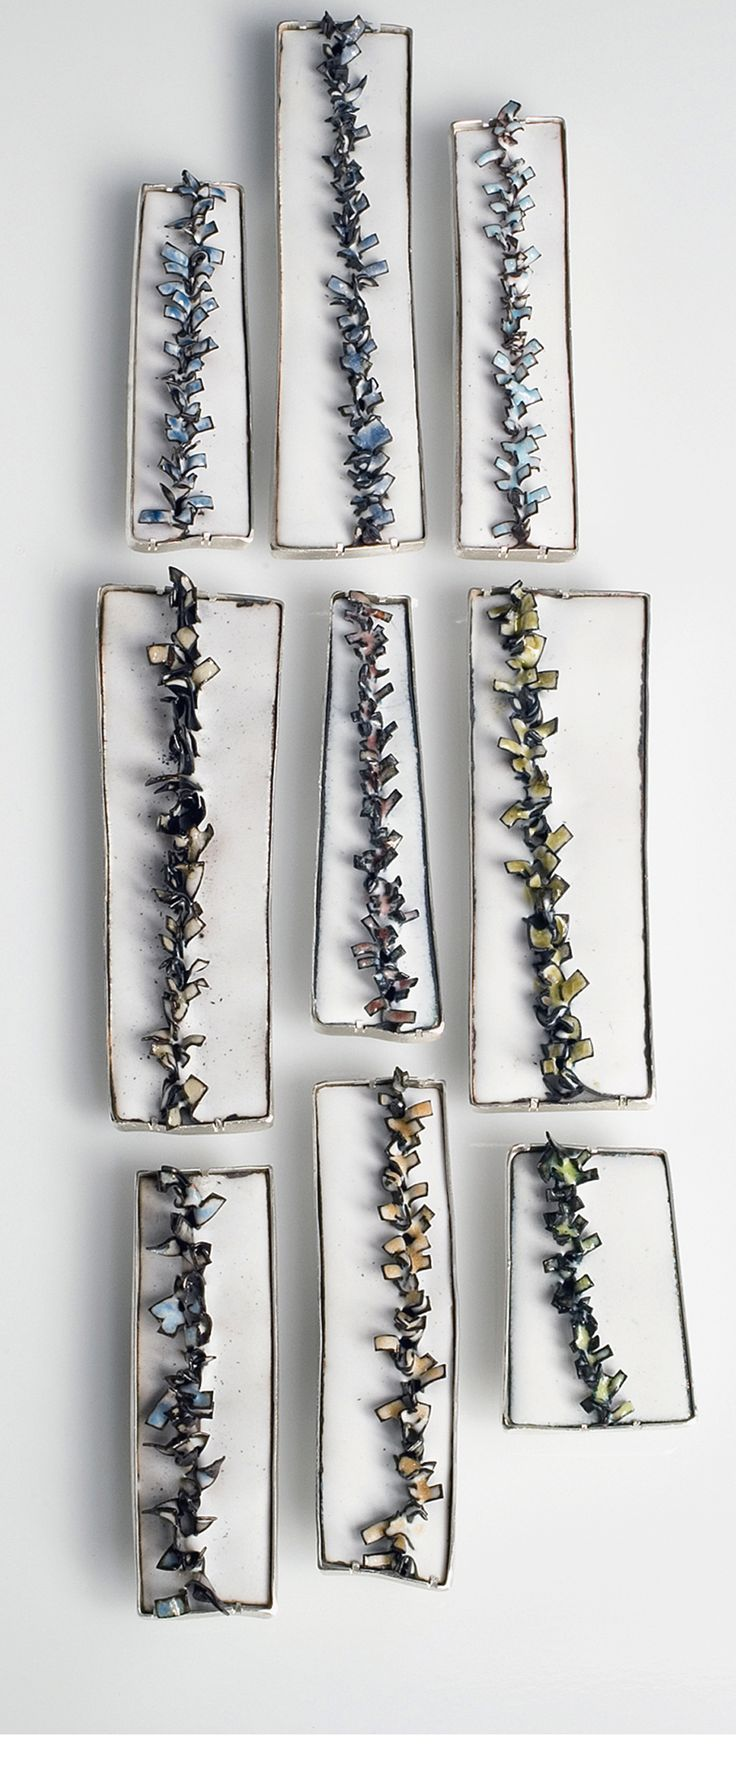 Enamelled jewellery design - contemporary brooches with metal fringe detail; art jewelry // Kate Cathey